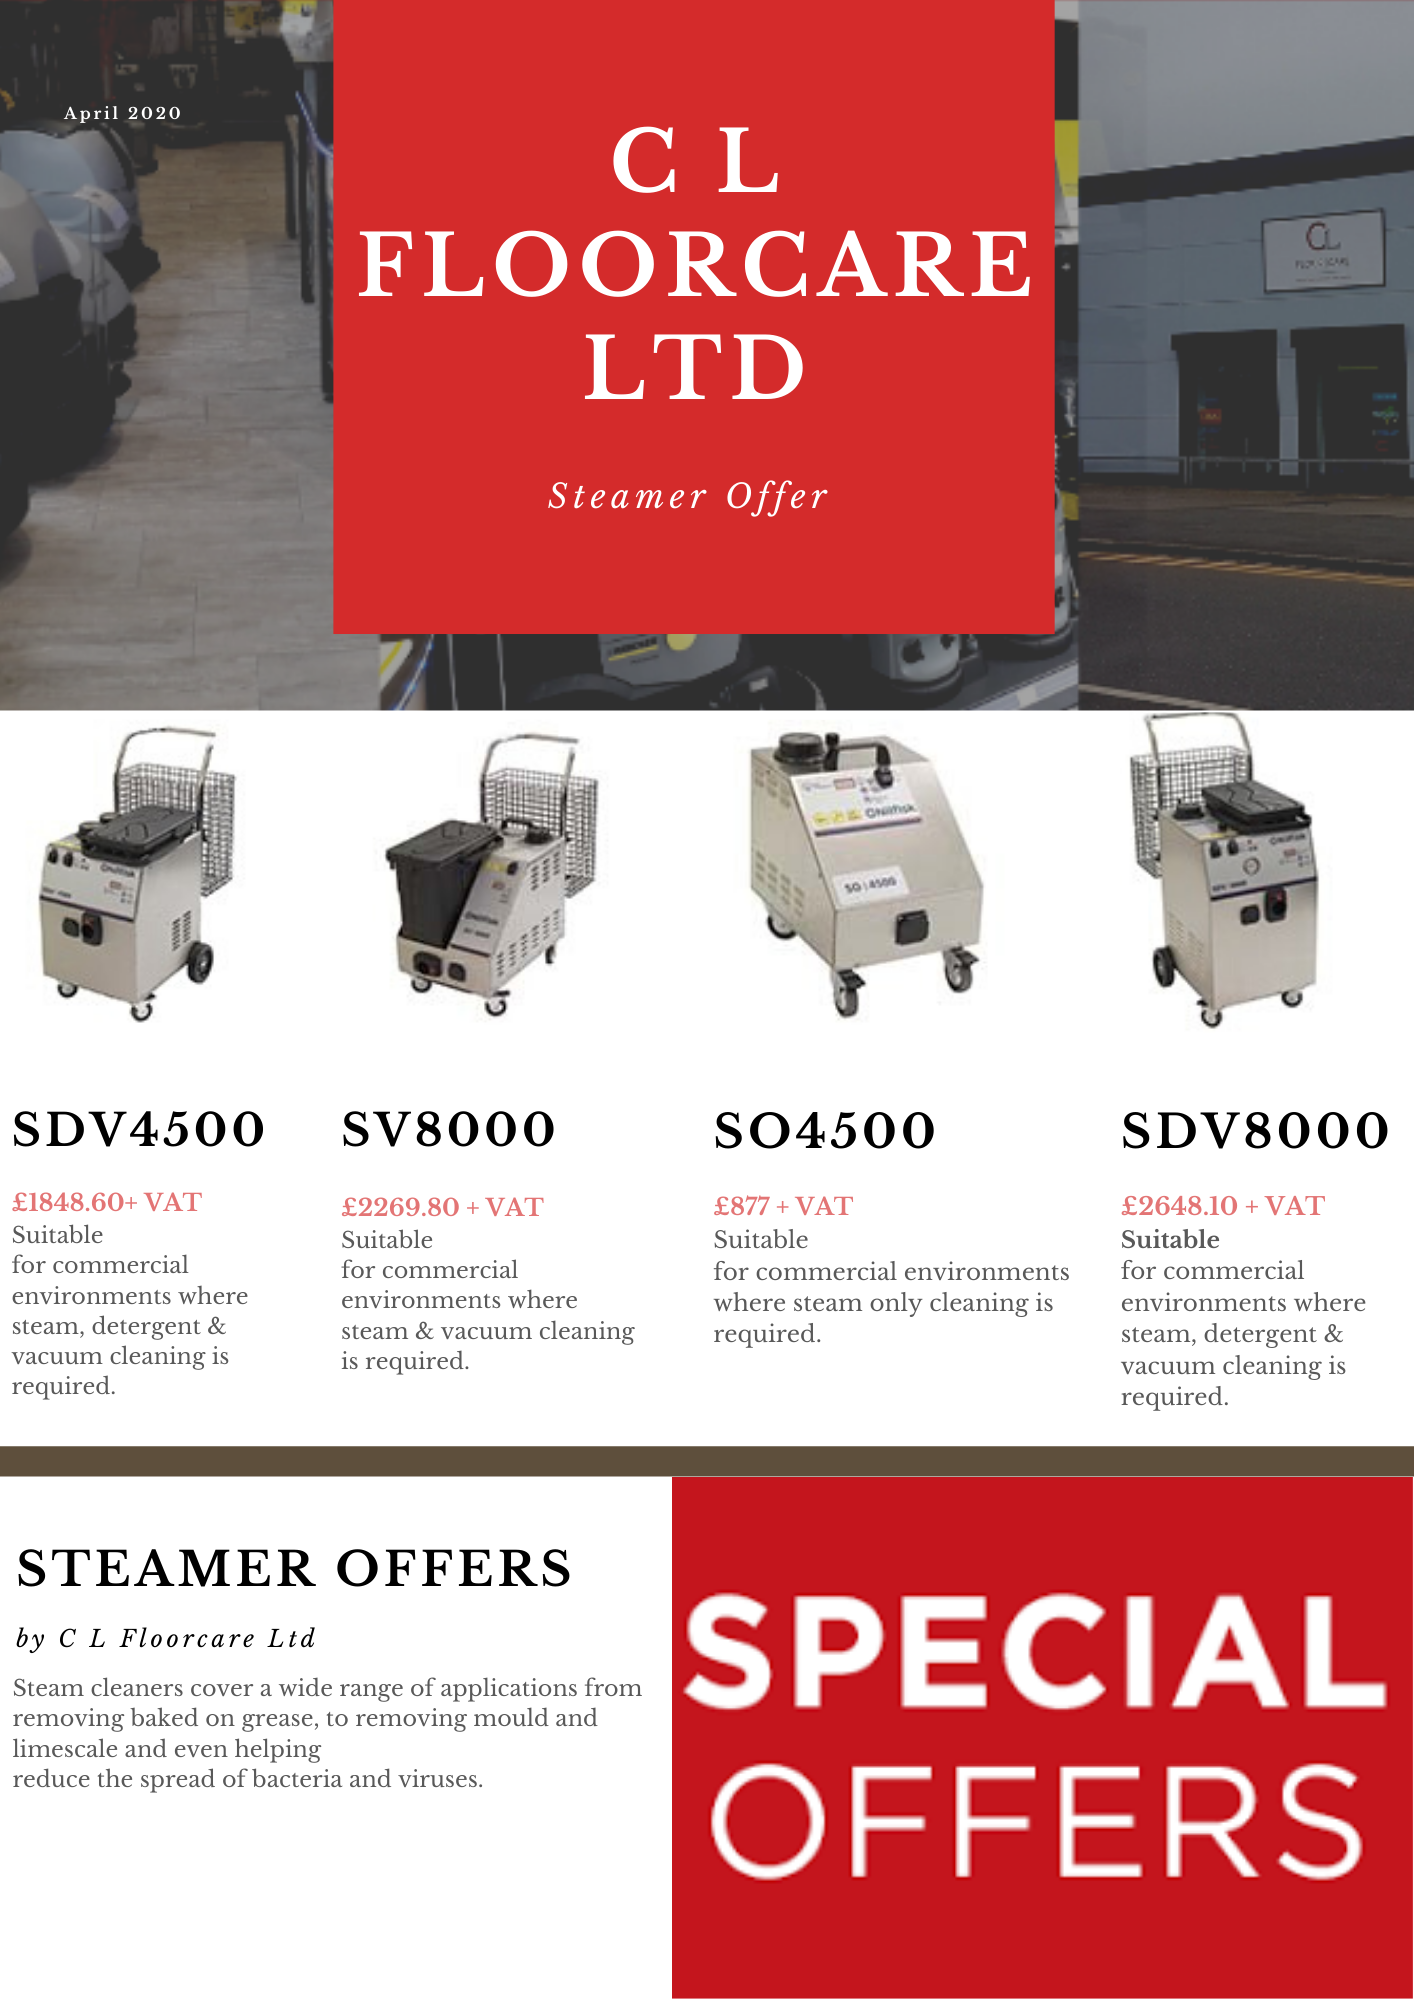 Steamer offers